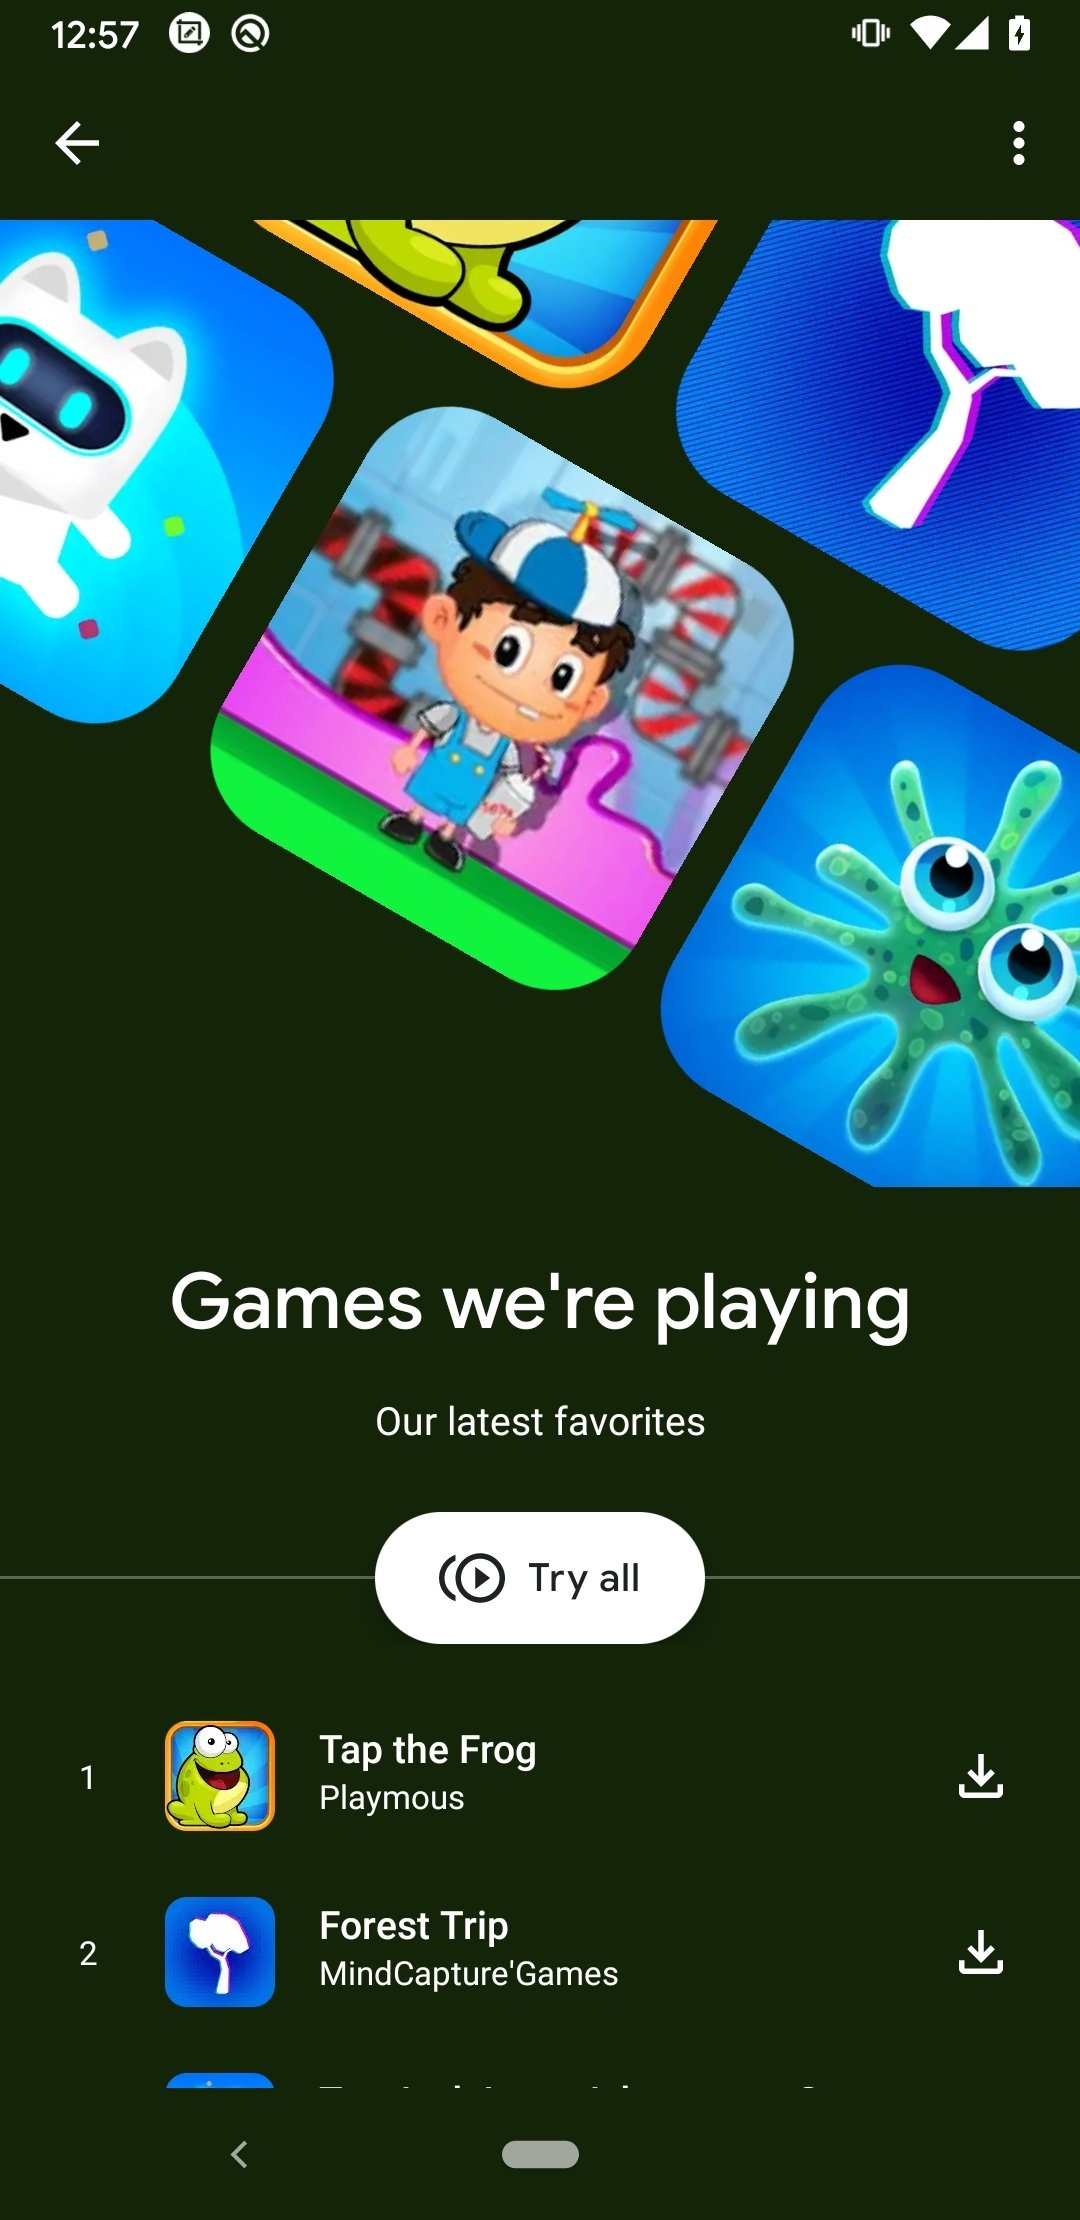 Google Play Games 2021 01 24213 Download For Android Apk Free